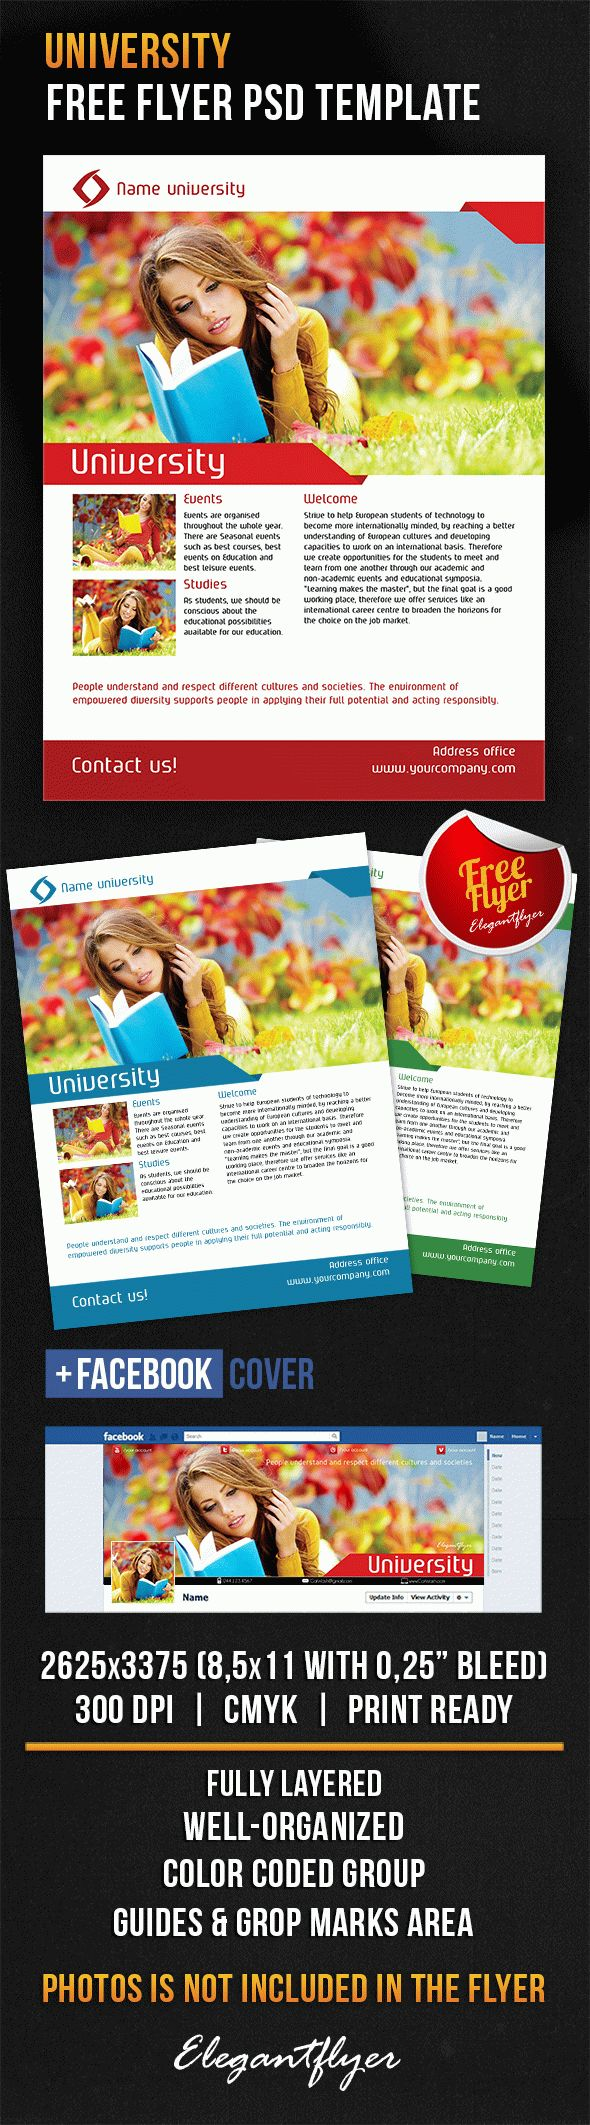 University – Free Flyer PSD Template